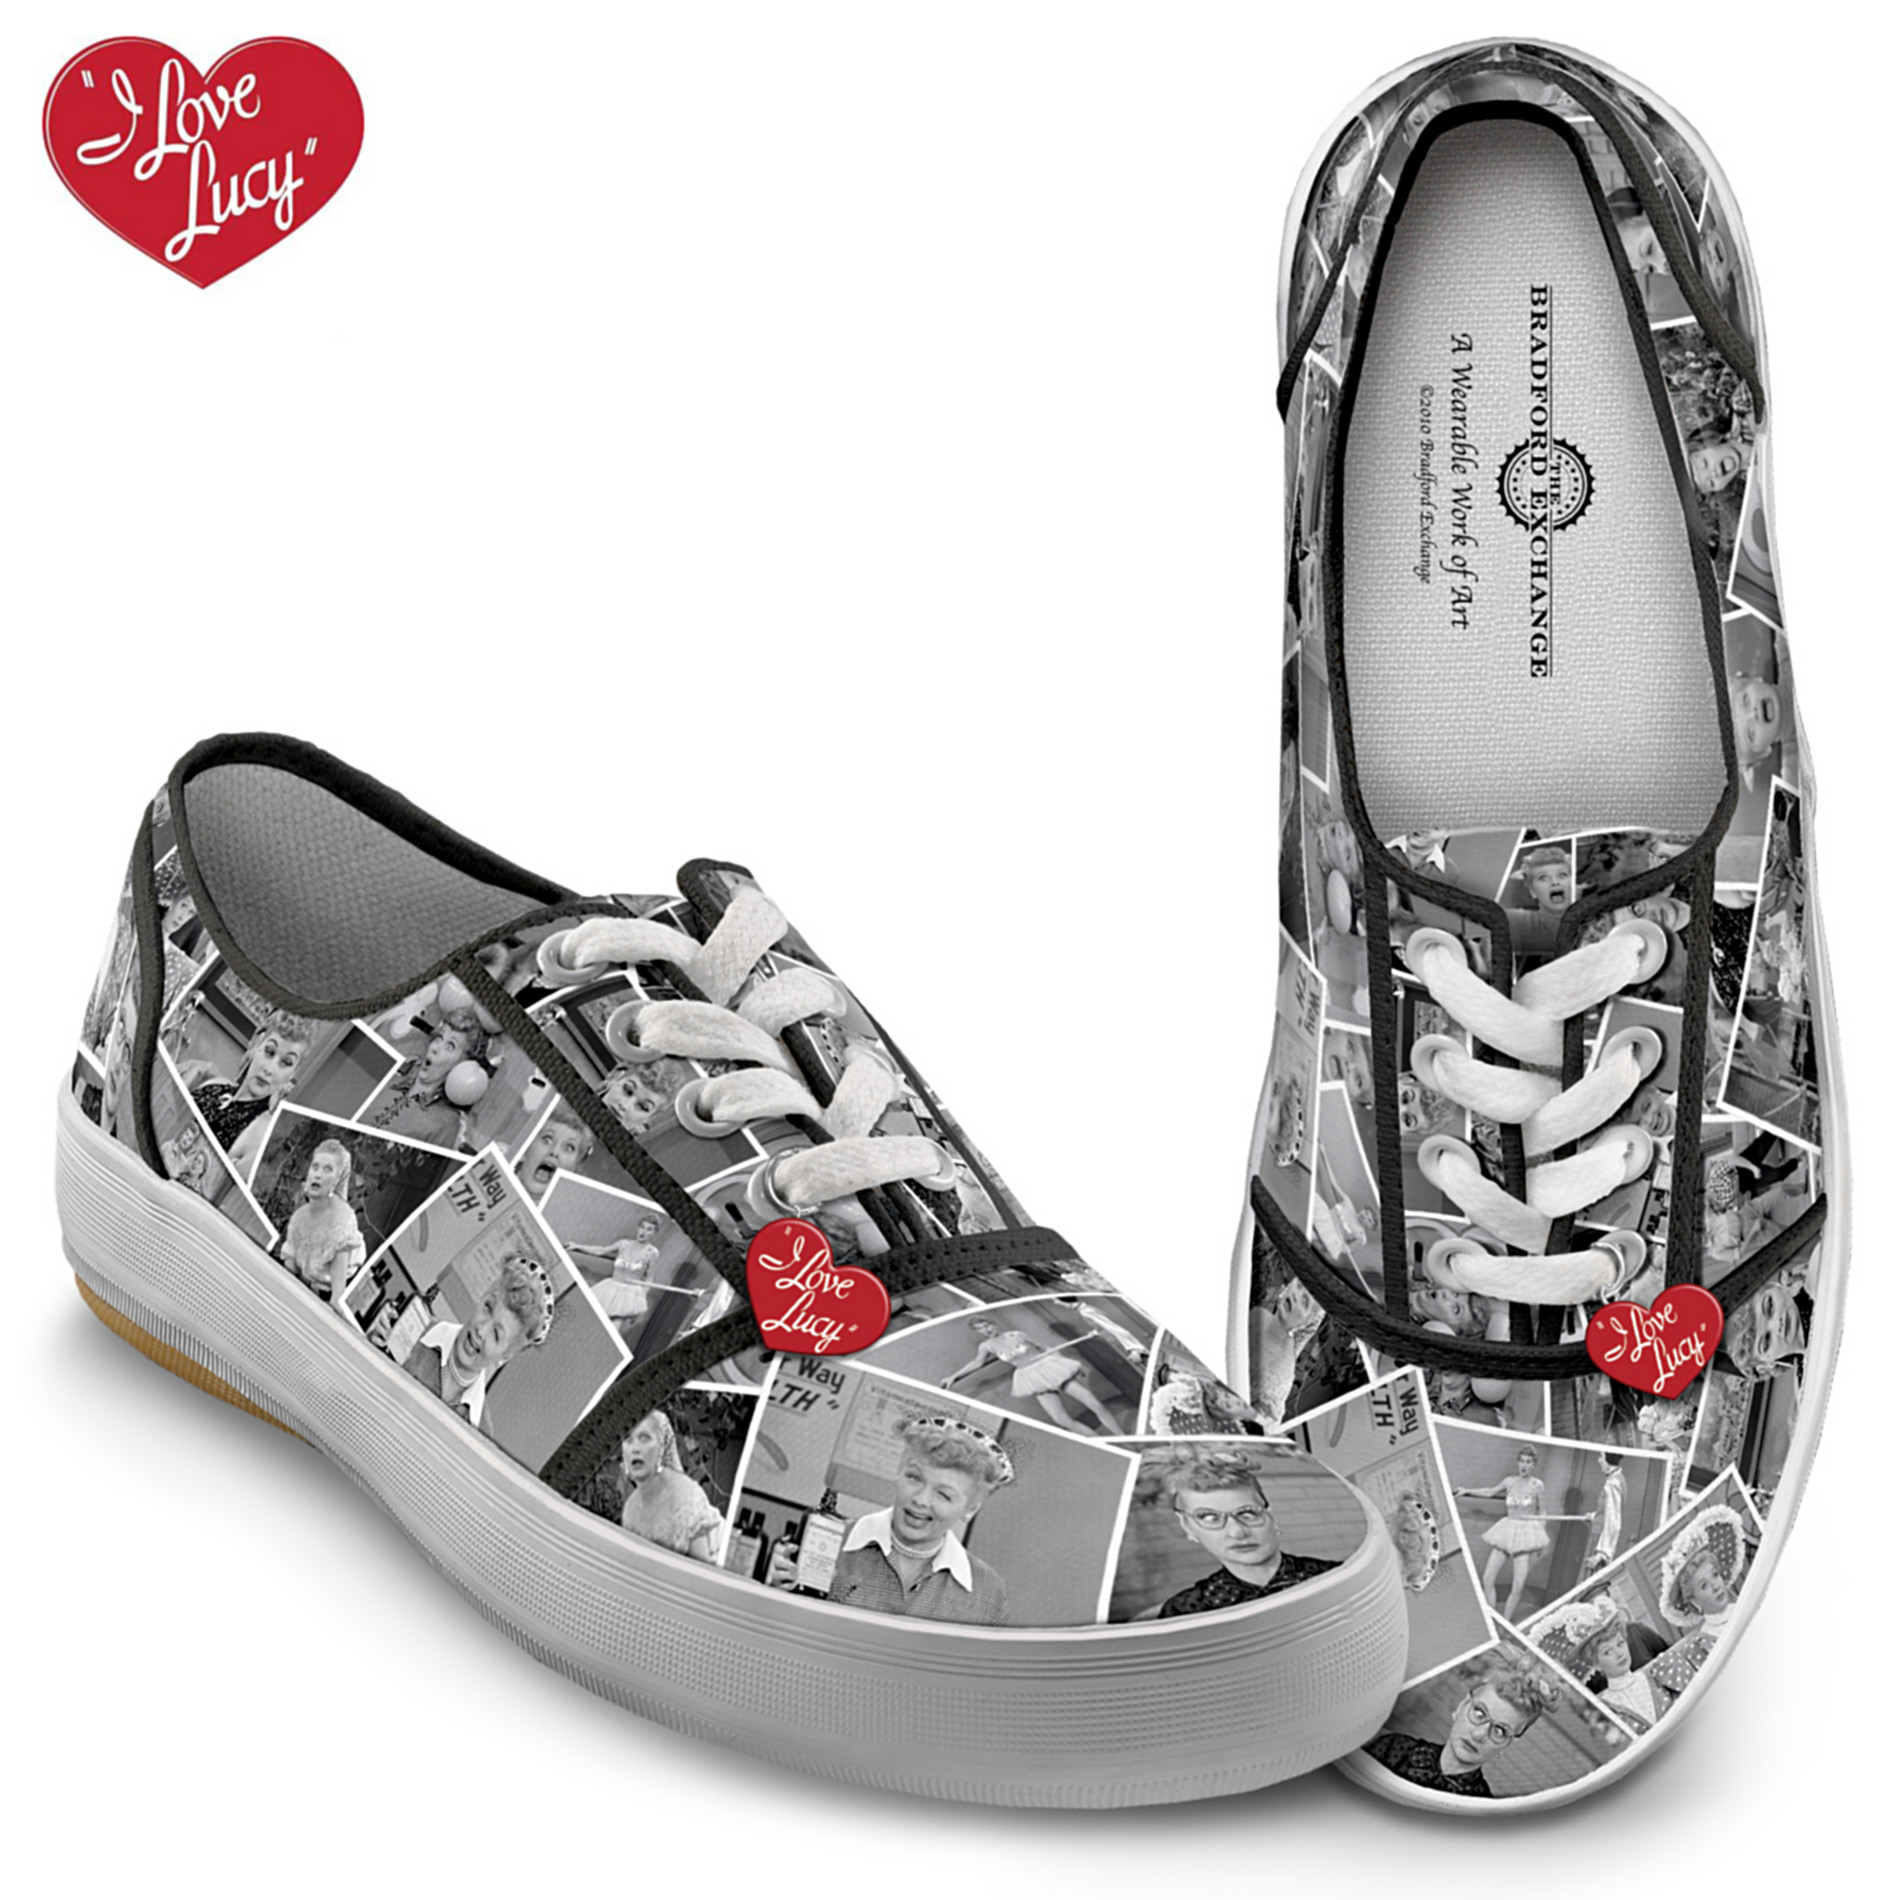 The Bradford Exchange I LOVE LUCY Women's Canvas Shoes at Sears.com